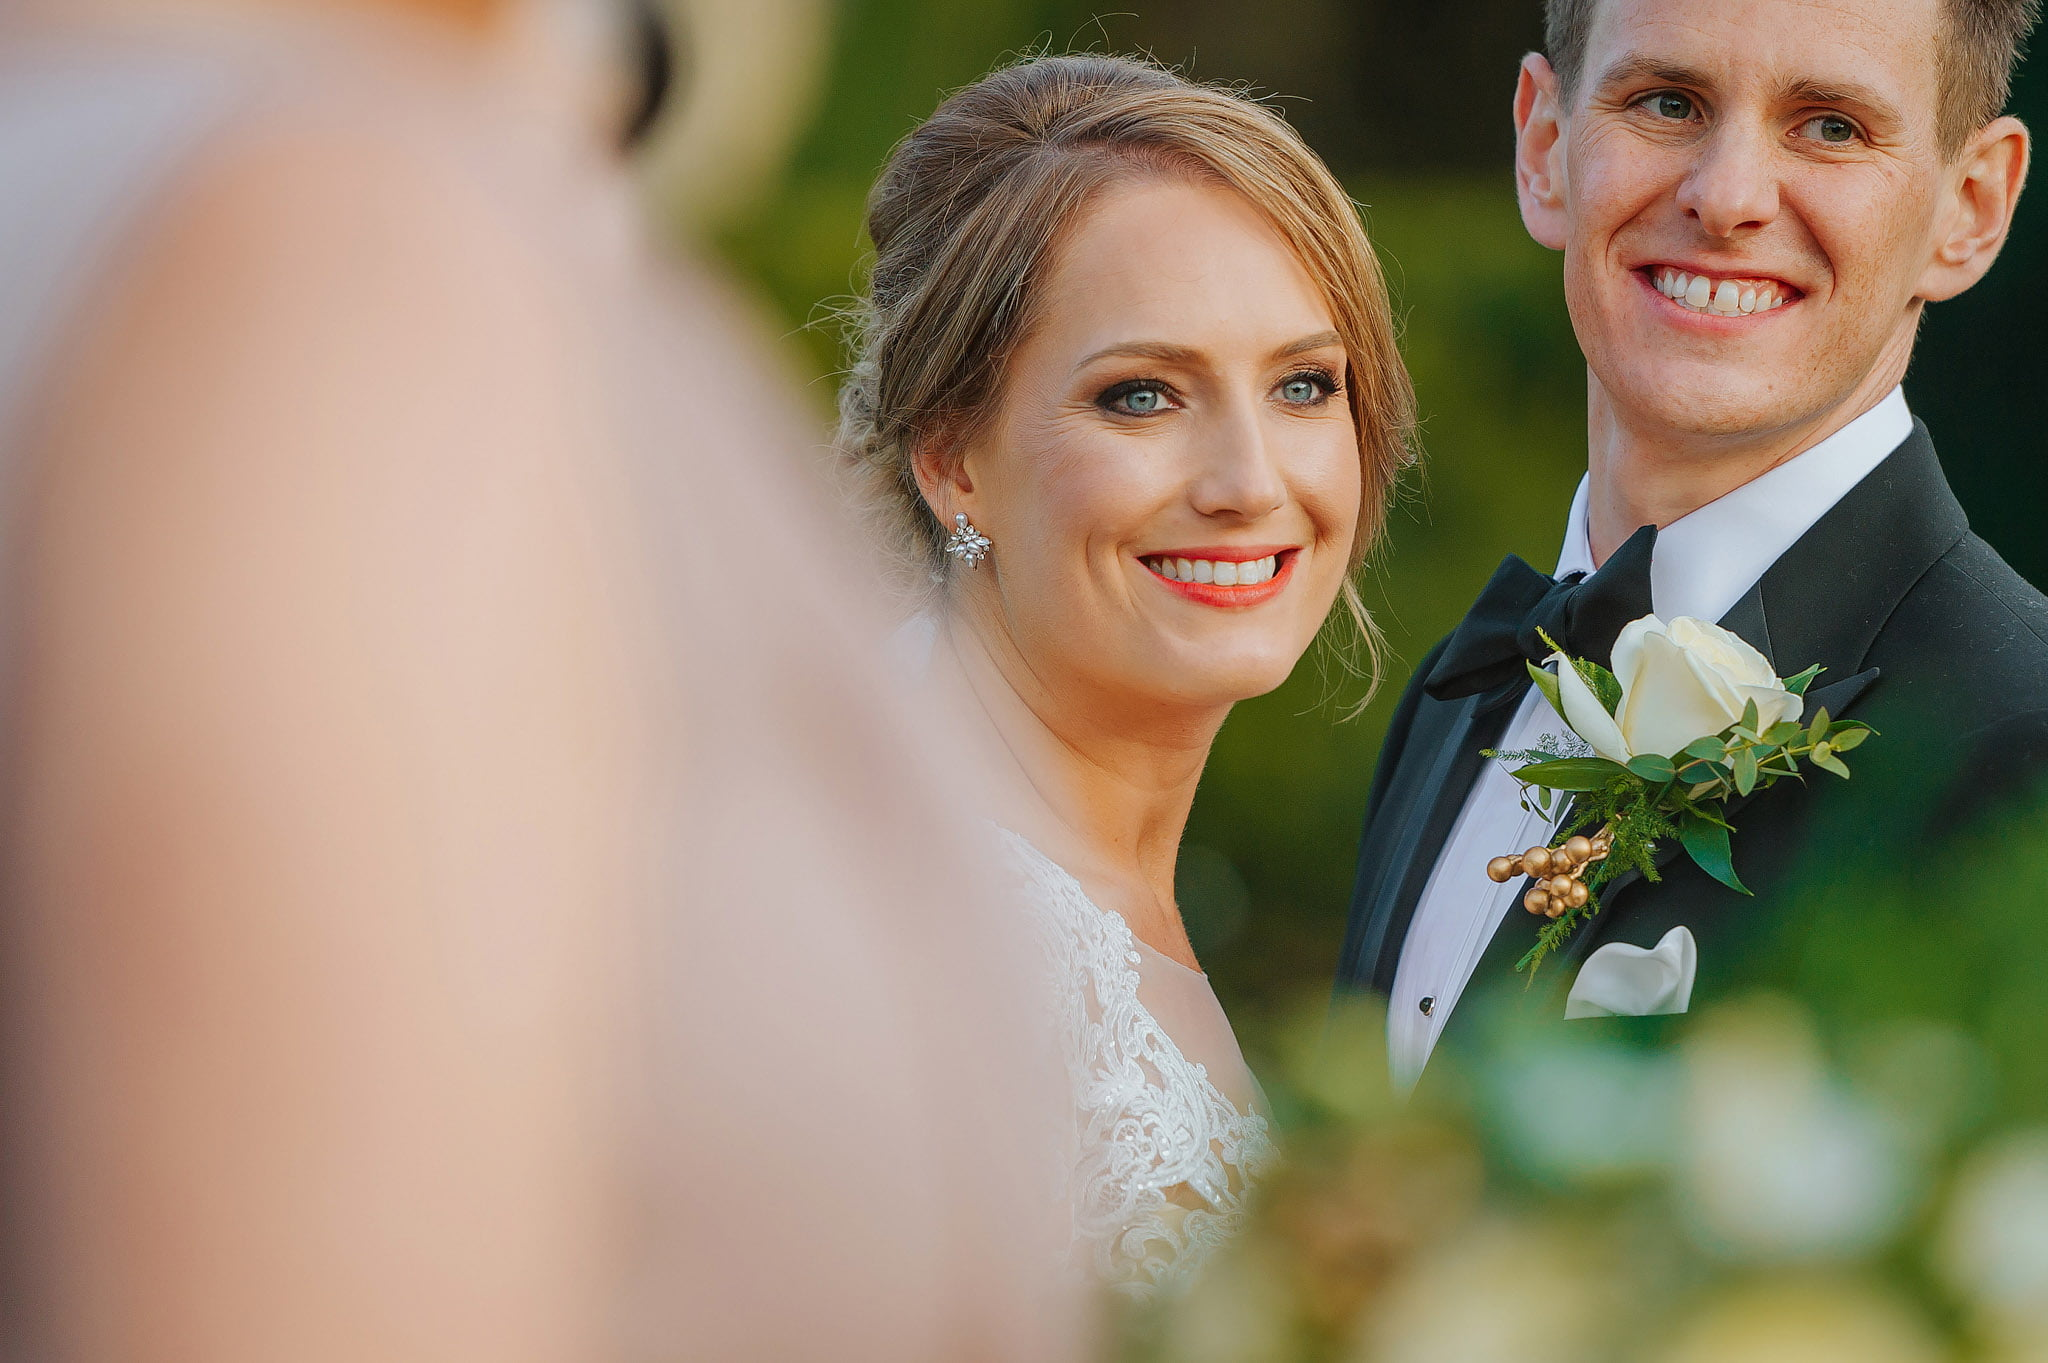 Coombe Abbey wedding in Coventry, Warwickshire - Sam + Matt 45